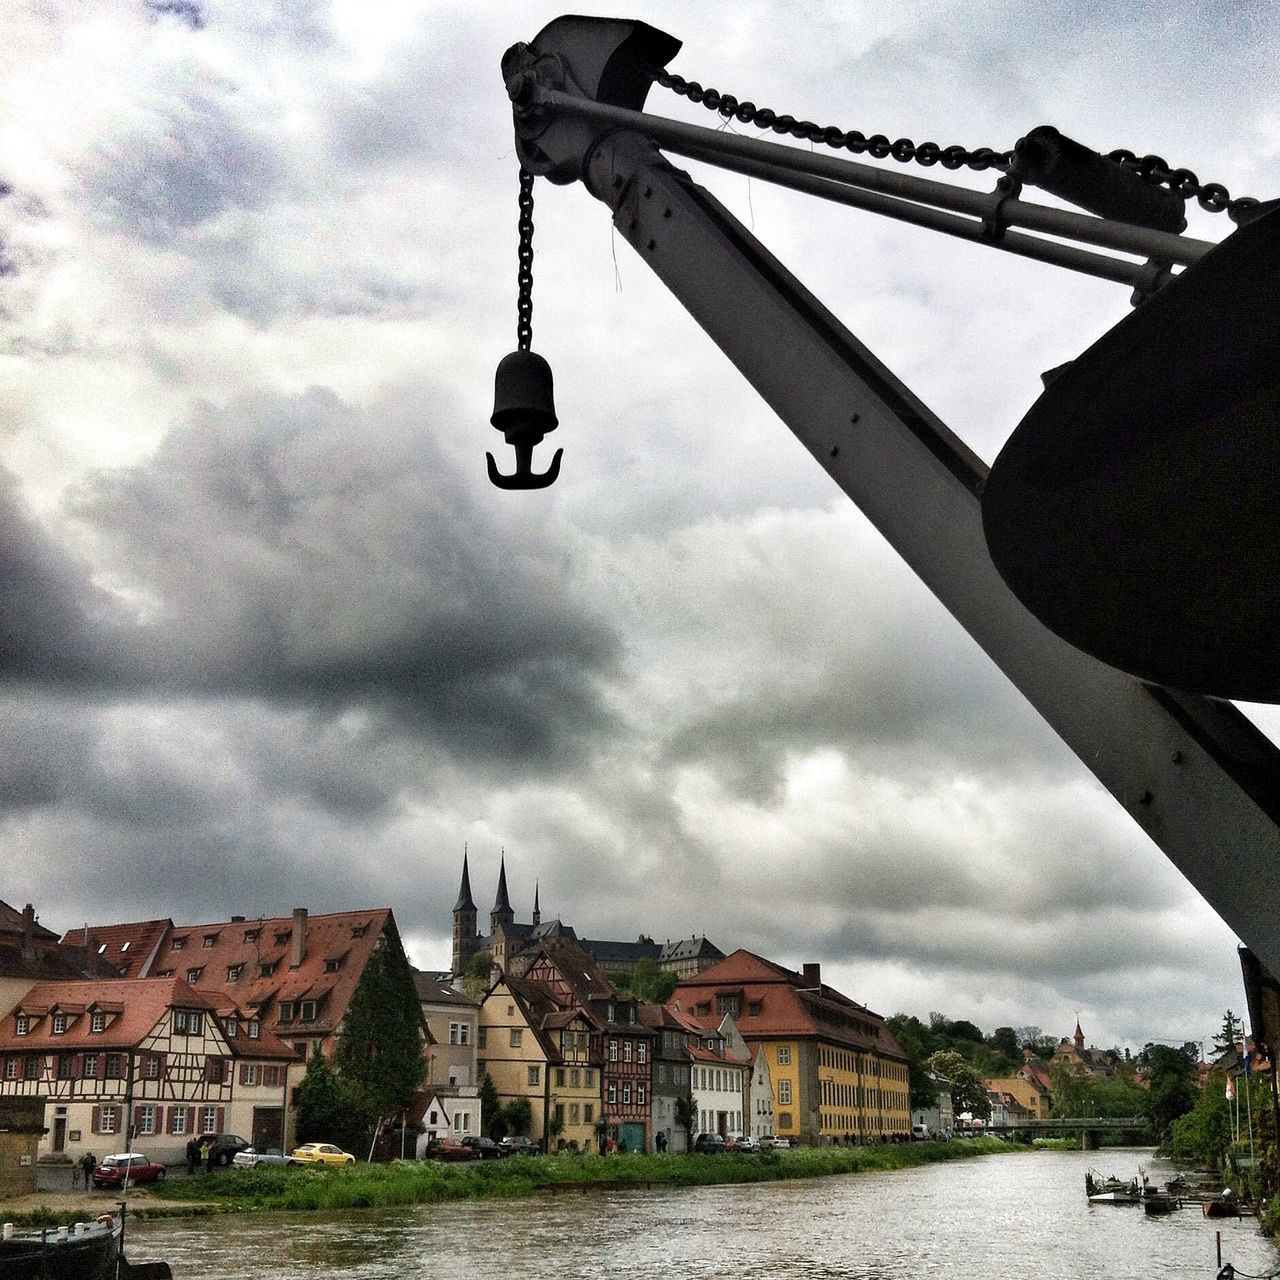 Taking Photos Dark Skies River Regnitz